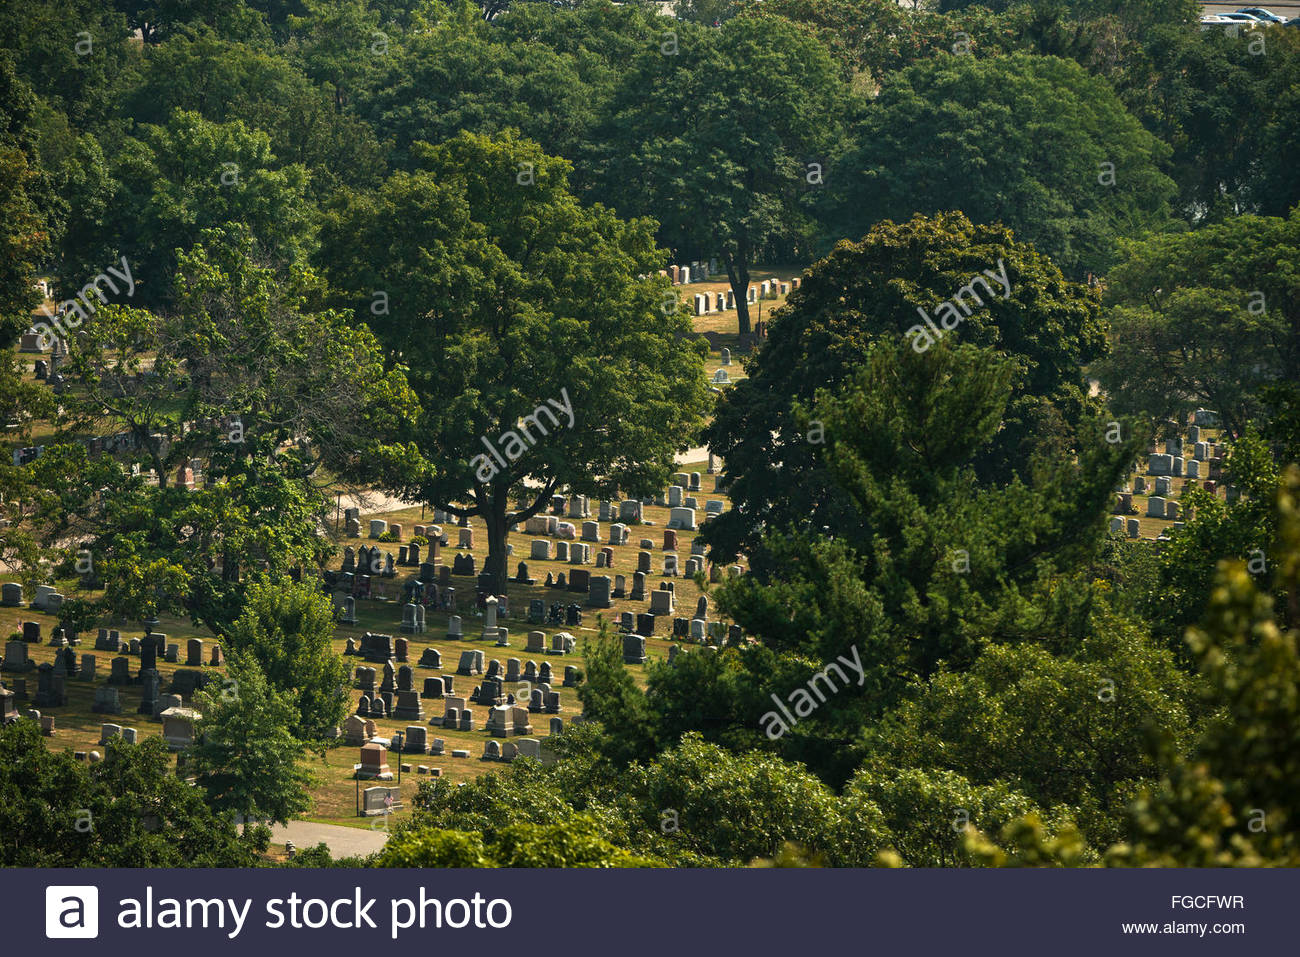 Mount Auburn Cemetery in Boston, Massachusetts. - Stock Image